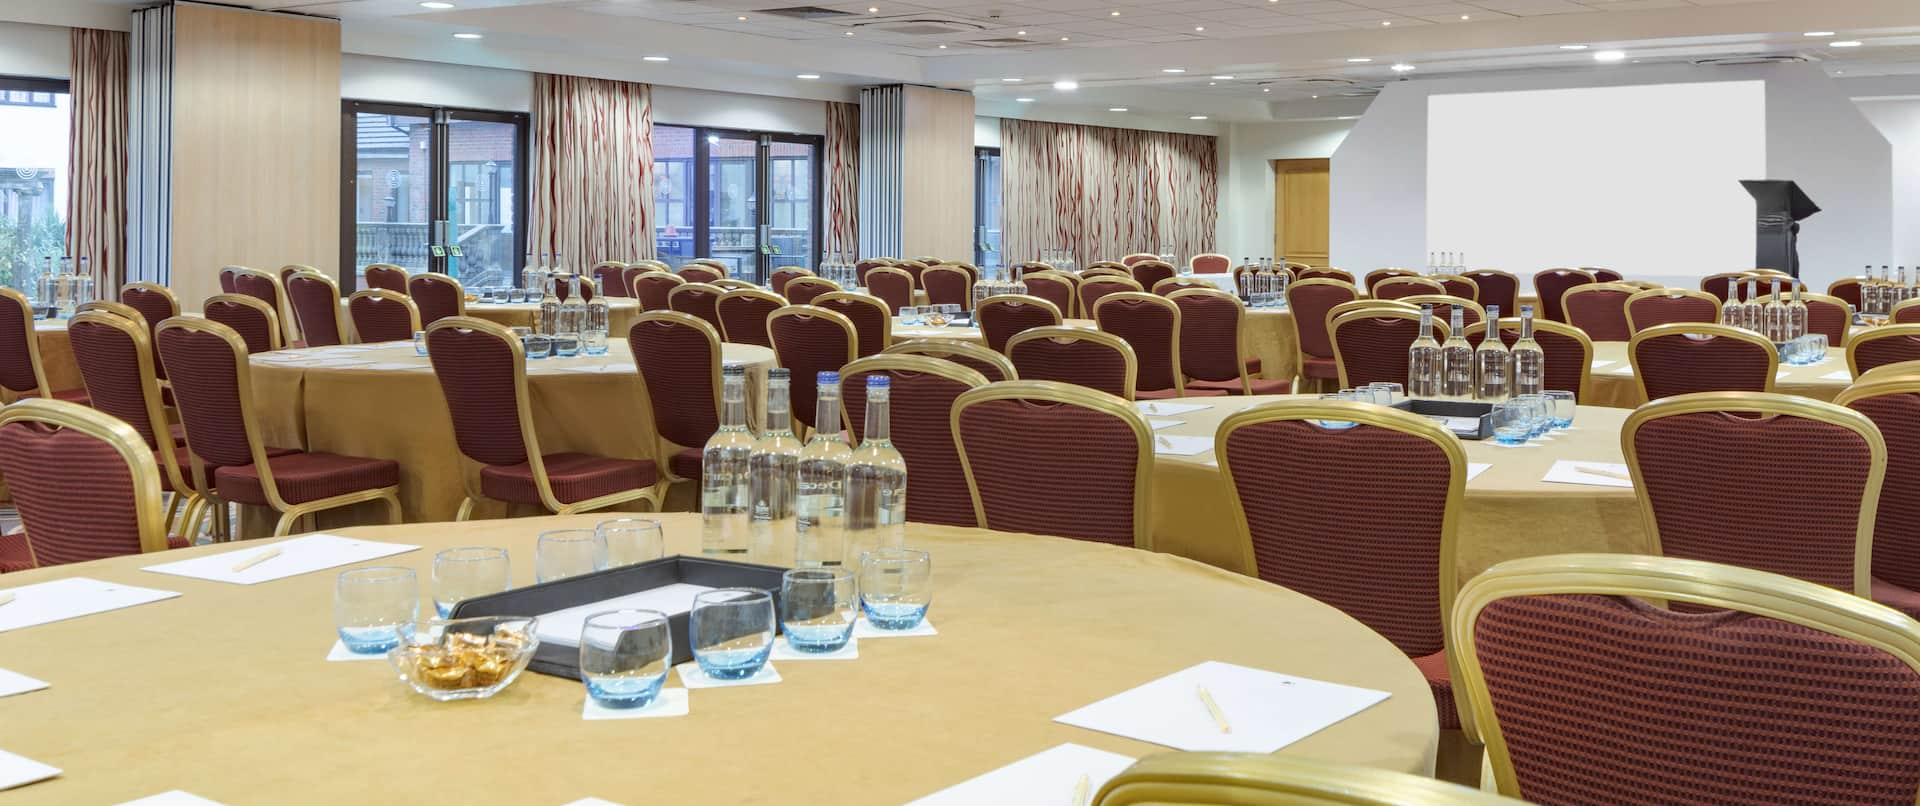 Large Meeting Room Setup in Rounds